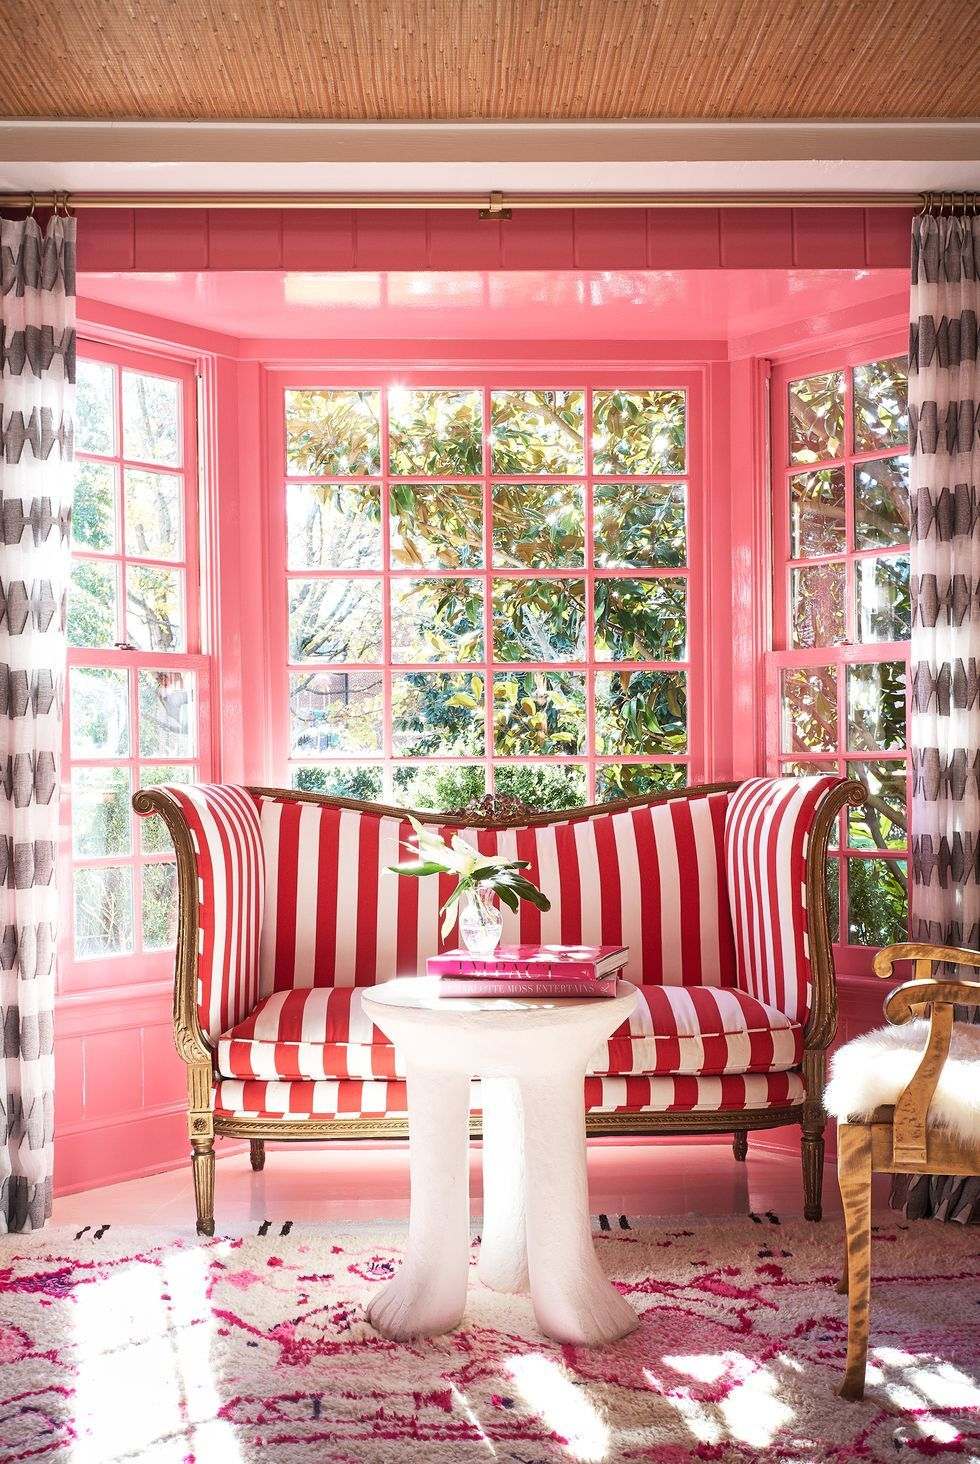 These Chic Pink Rooms Will Make You Want To Repaint Your Entire House In 2020 Living Room Color Paint Colors For Living Room Good Living Room Colors #pink #and #chocolate #brown #living #room